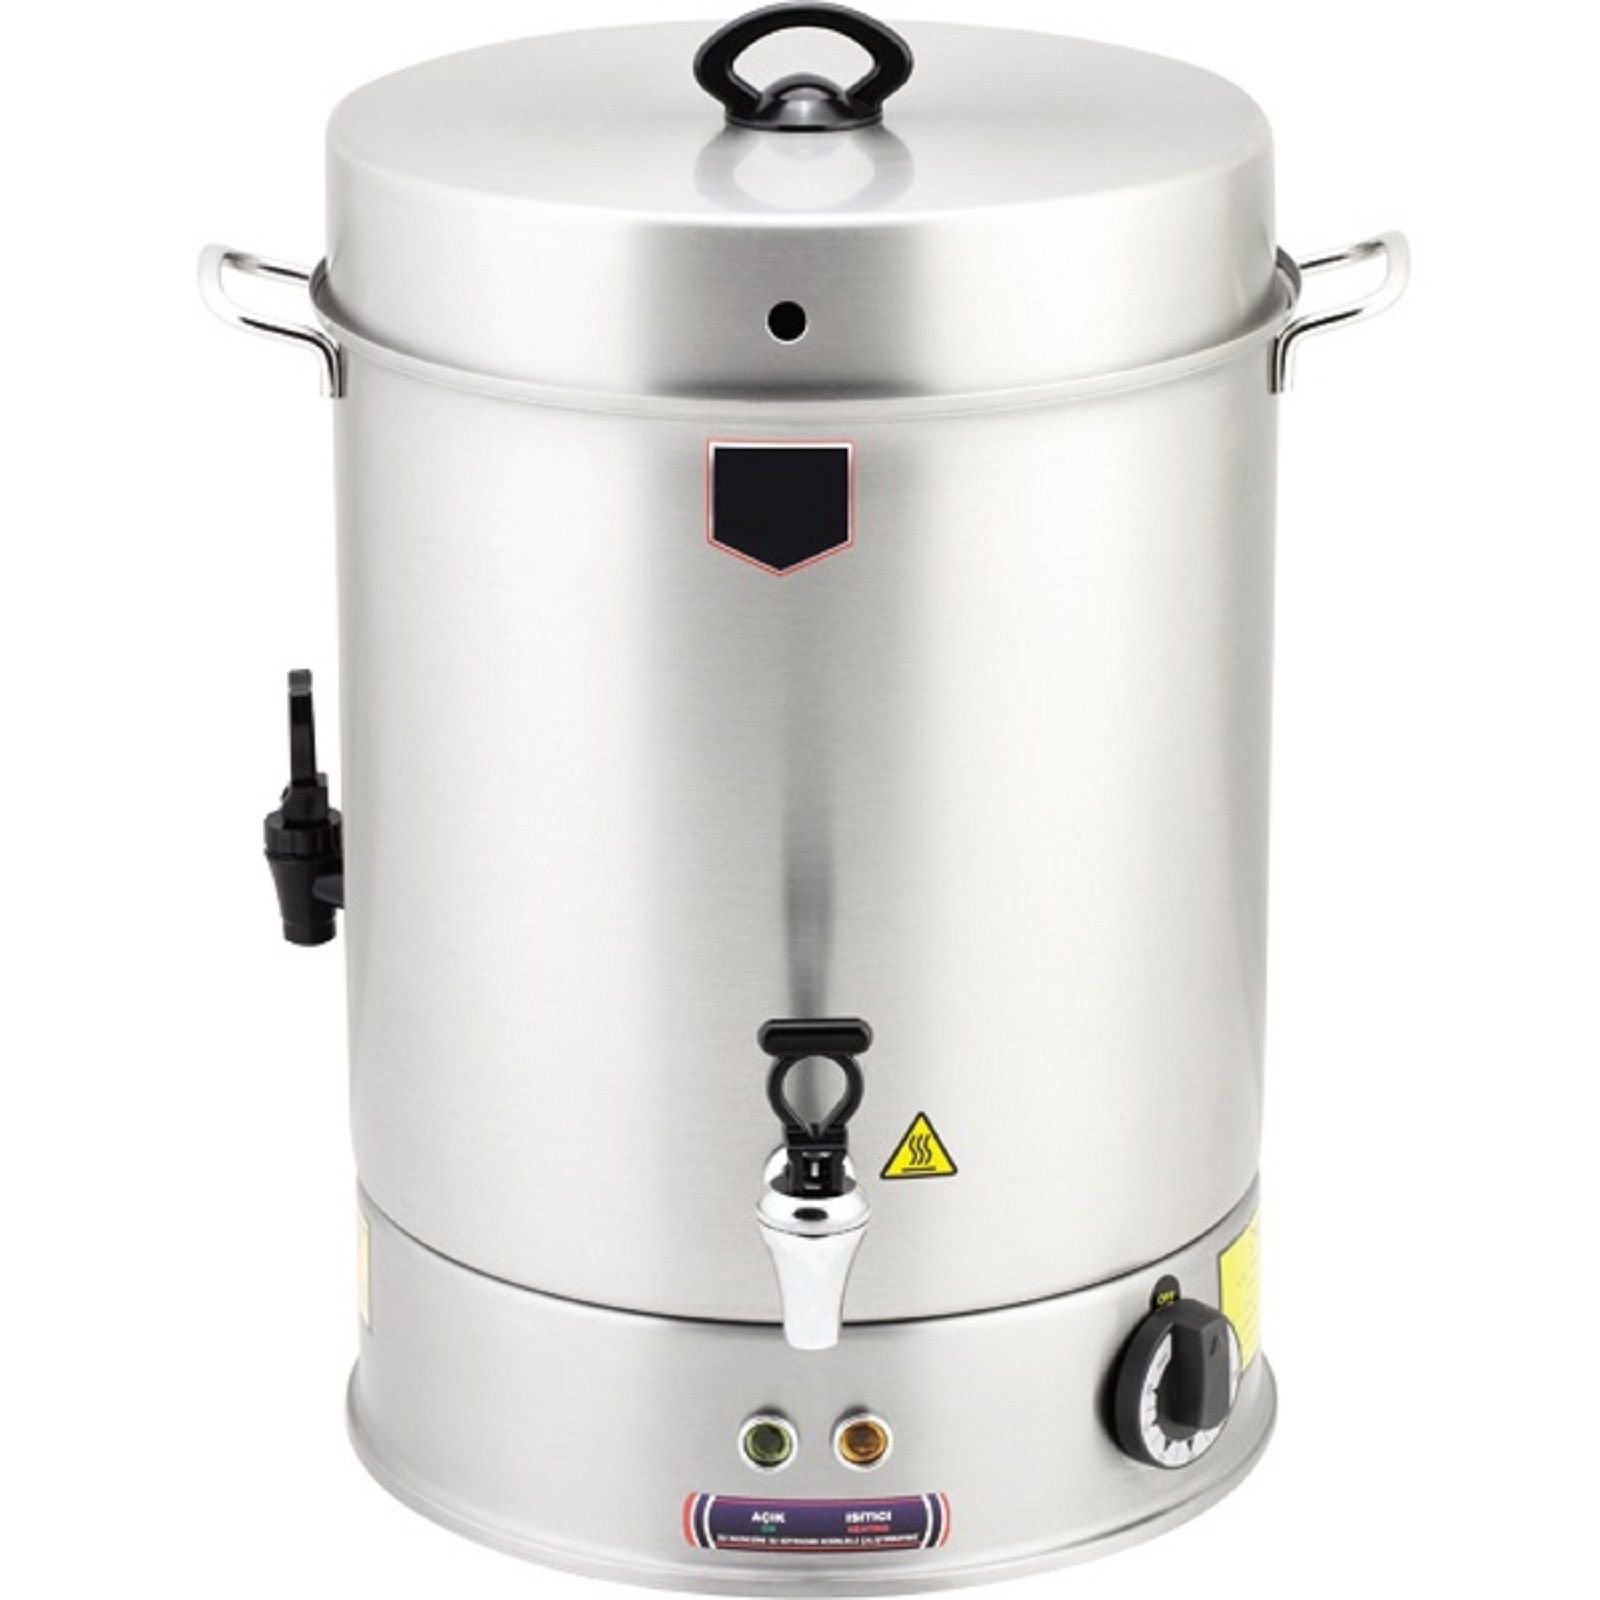 Commercial Kitchen Equipment Stainless Steel Electric 12 LT Capacity Hotel industrial Restaurant Cafe Milk Warmer Boiler